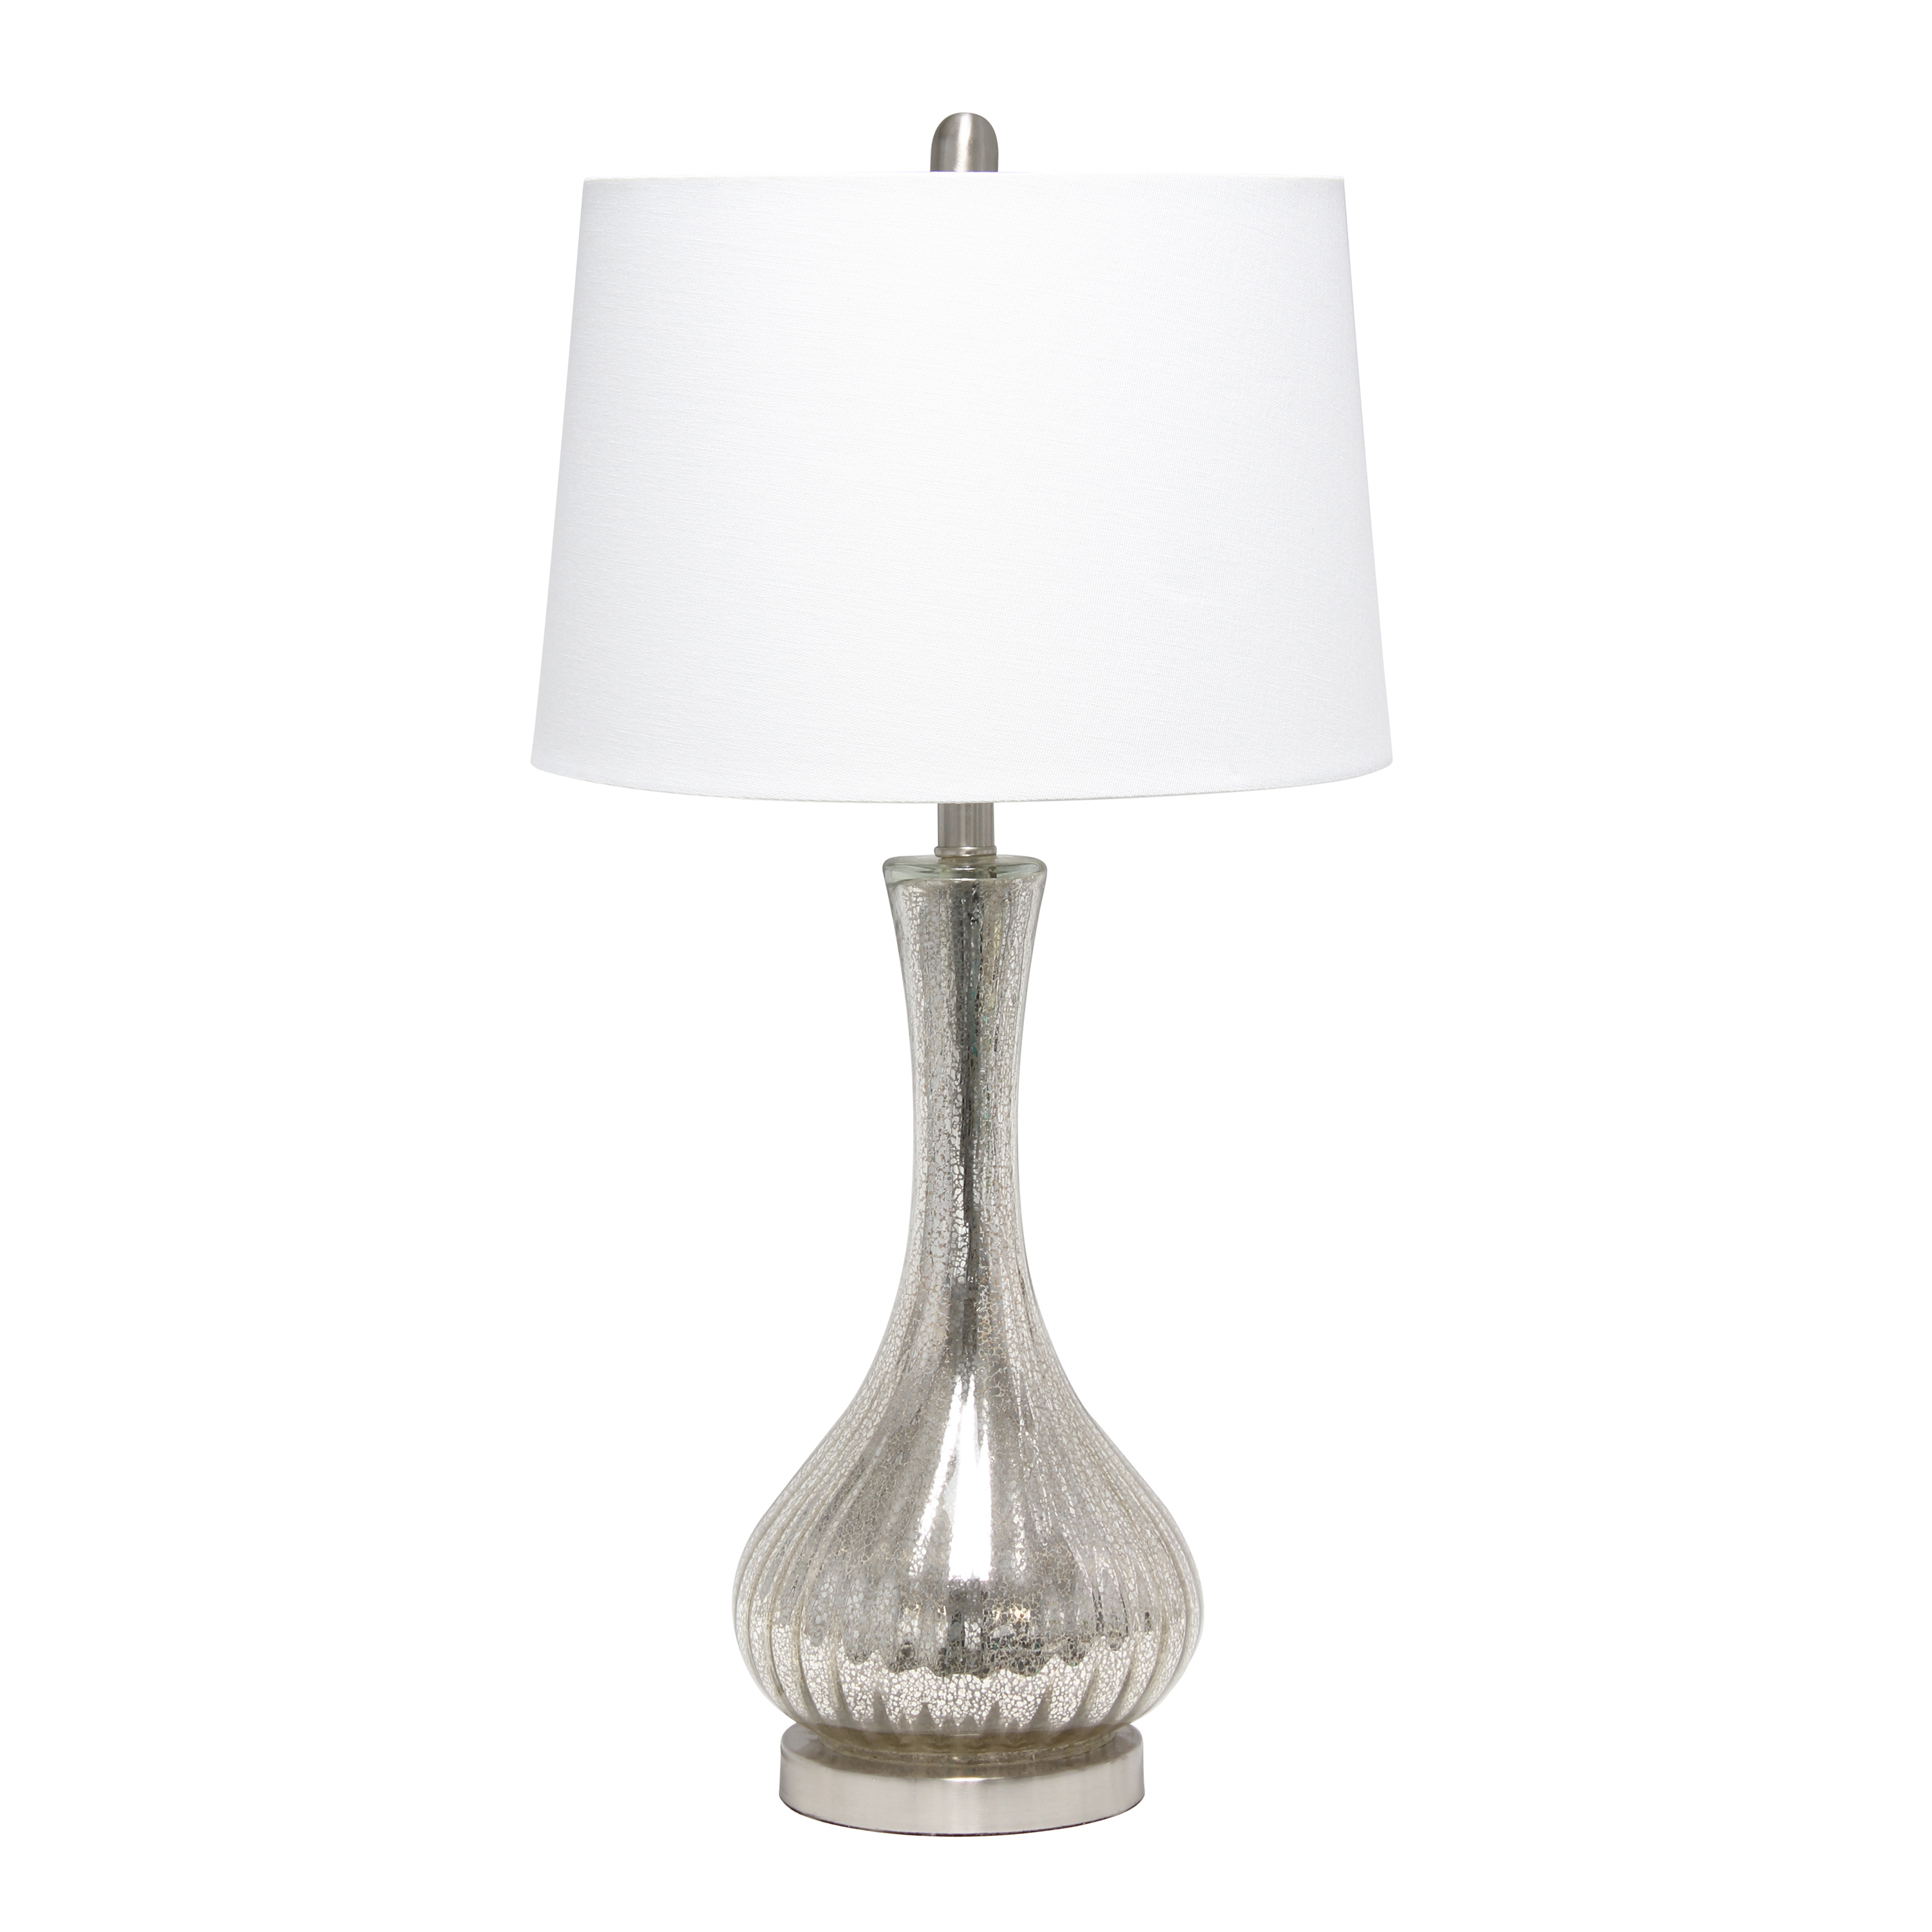 Lalia Home Speckled Mercury Tear Drop Table Lamp with White Fabric Shade